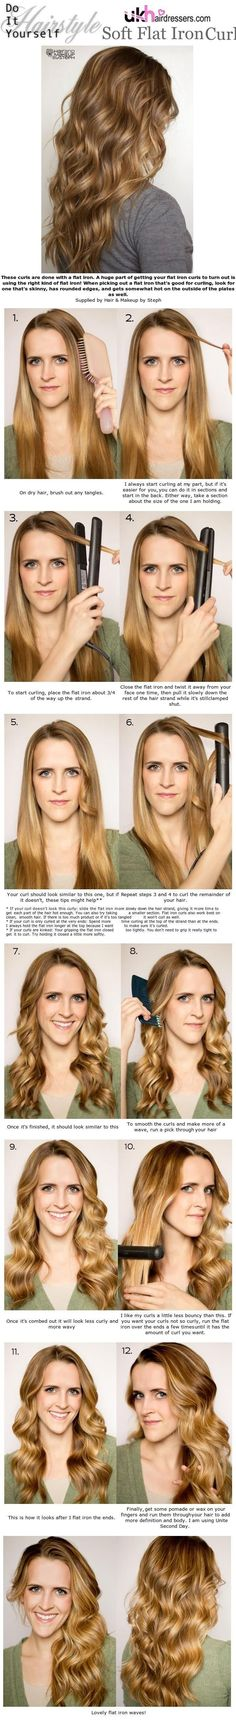 Flat Iron Curls 6 Ways to curl your hair for homecoming